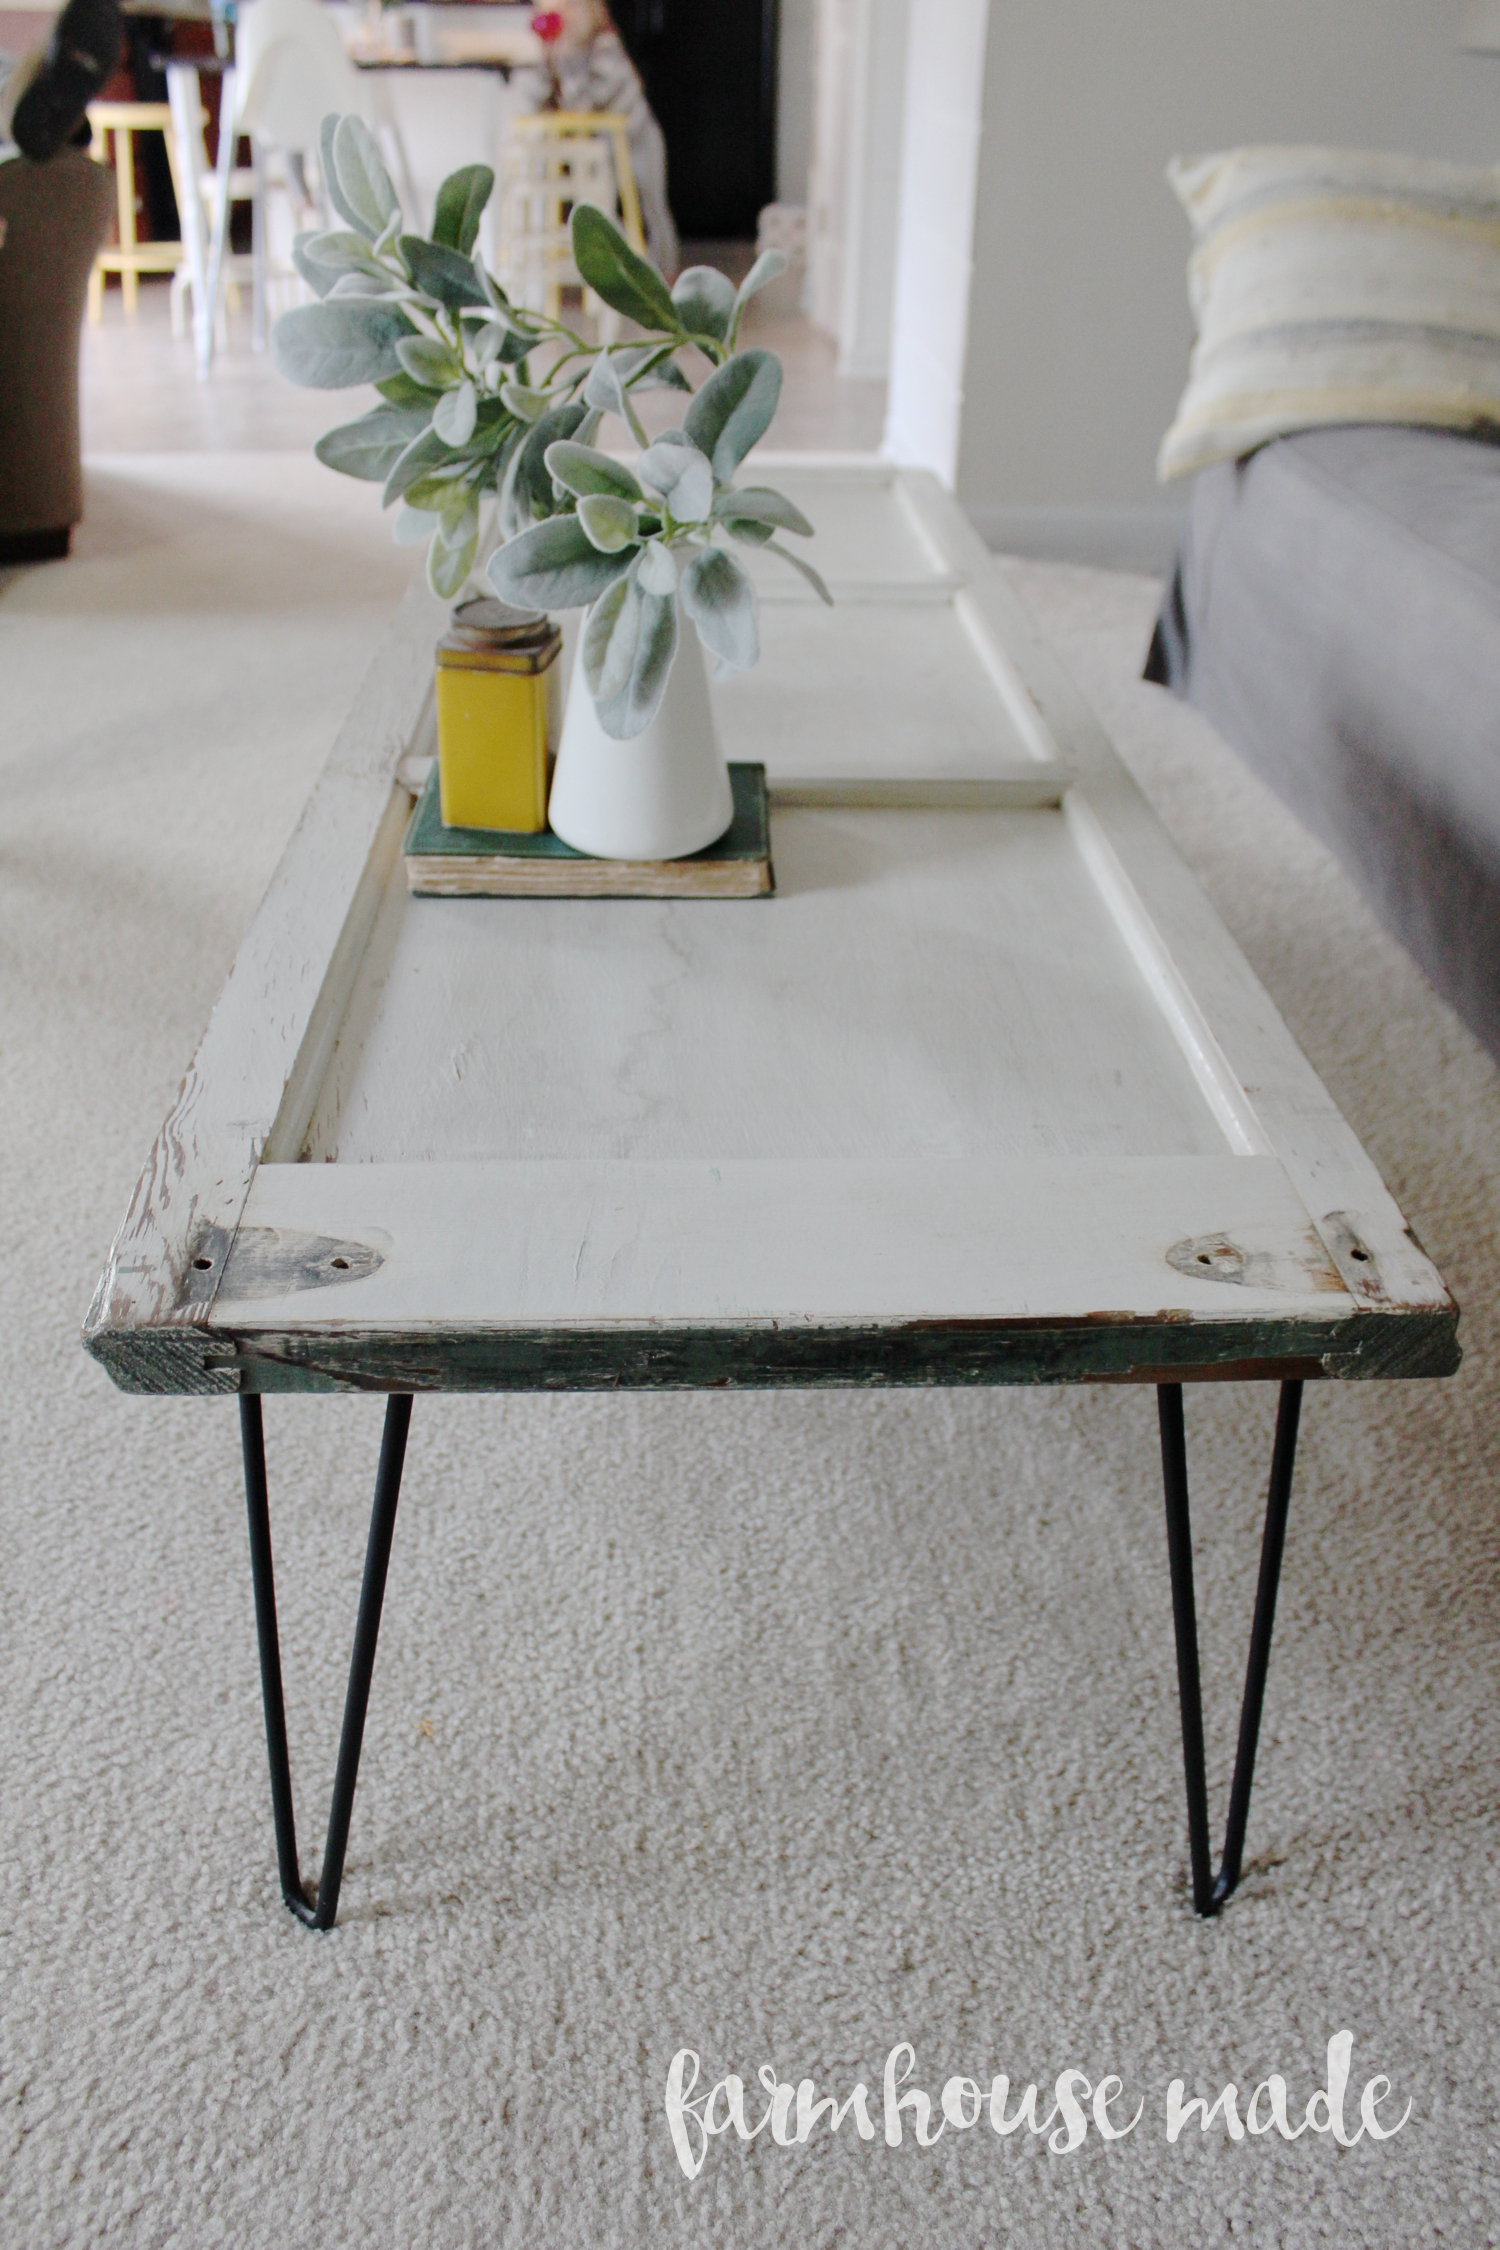 Top 5 DIY s To Add Farmhouse Style Farmhouse Made